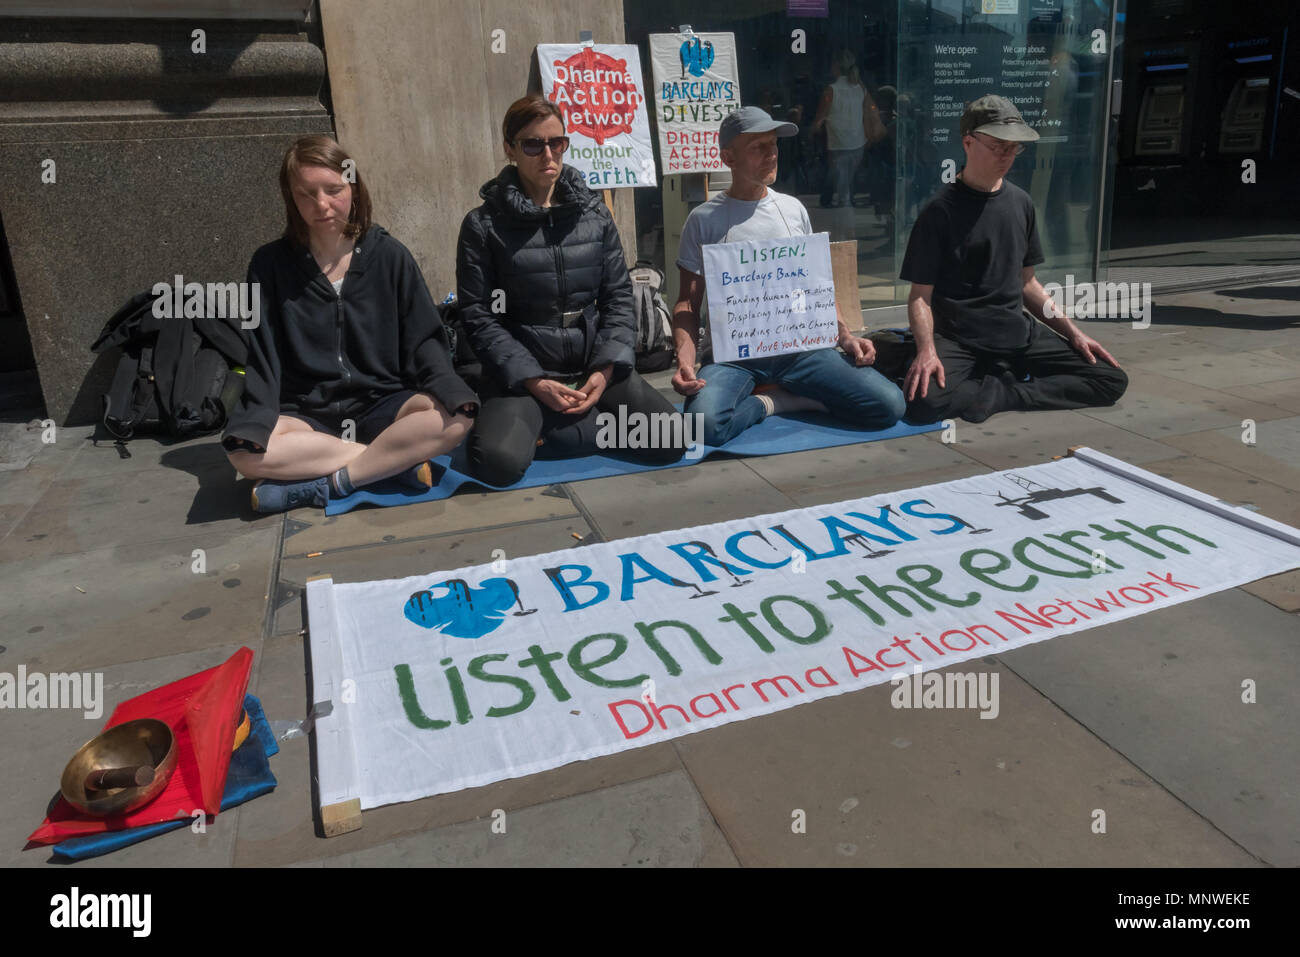 London, UK. 19th May 2018. Four members of the Dharma Action Network for Climate Engagement (DANCE) sit and meditate in front of the Piccadilly Circus branch of Barclays Bank to call on them to Stop Funding Climate Chaos. Credit: Peter Marshall/Alamy Live News - Stock Image